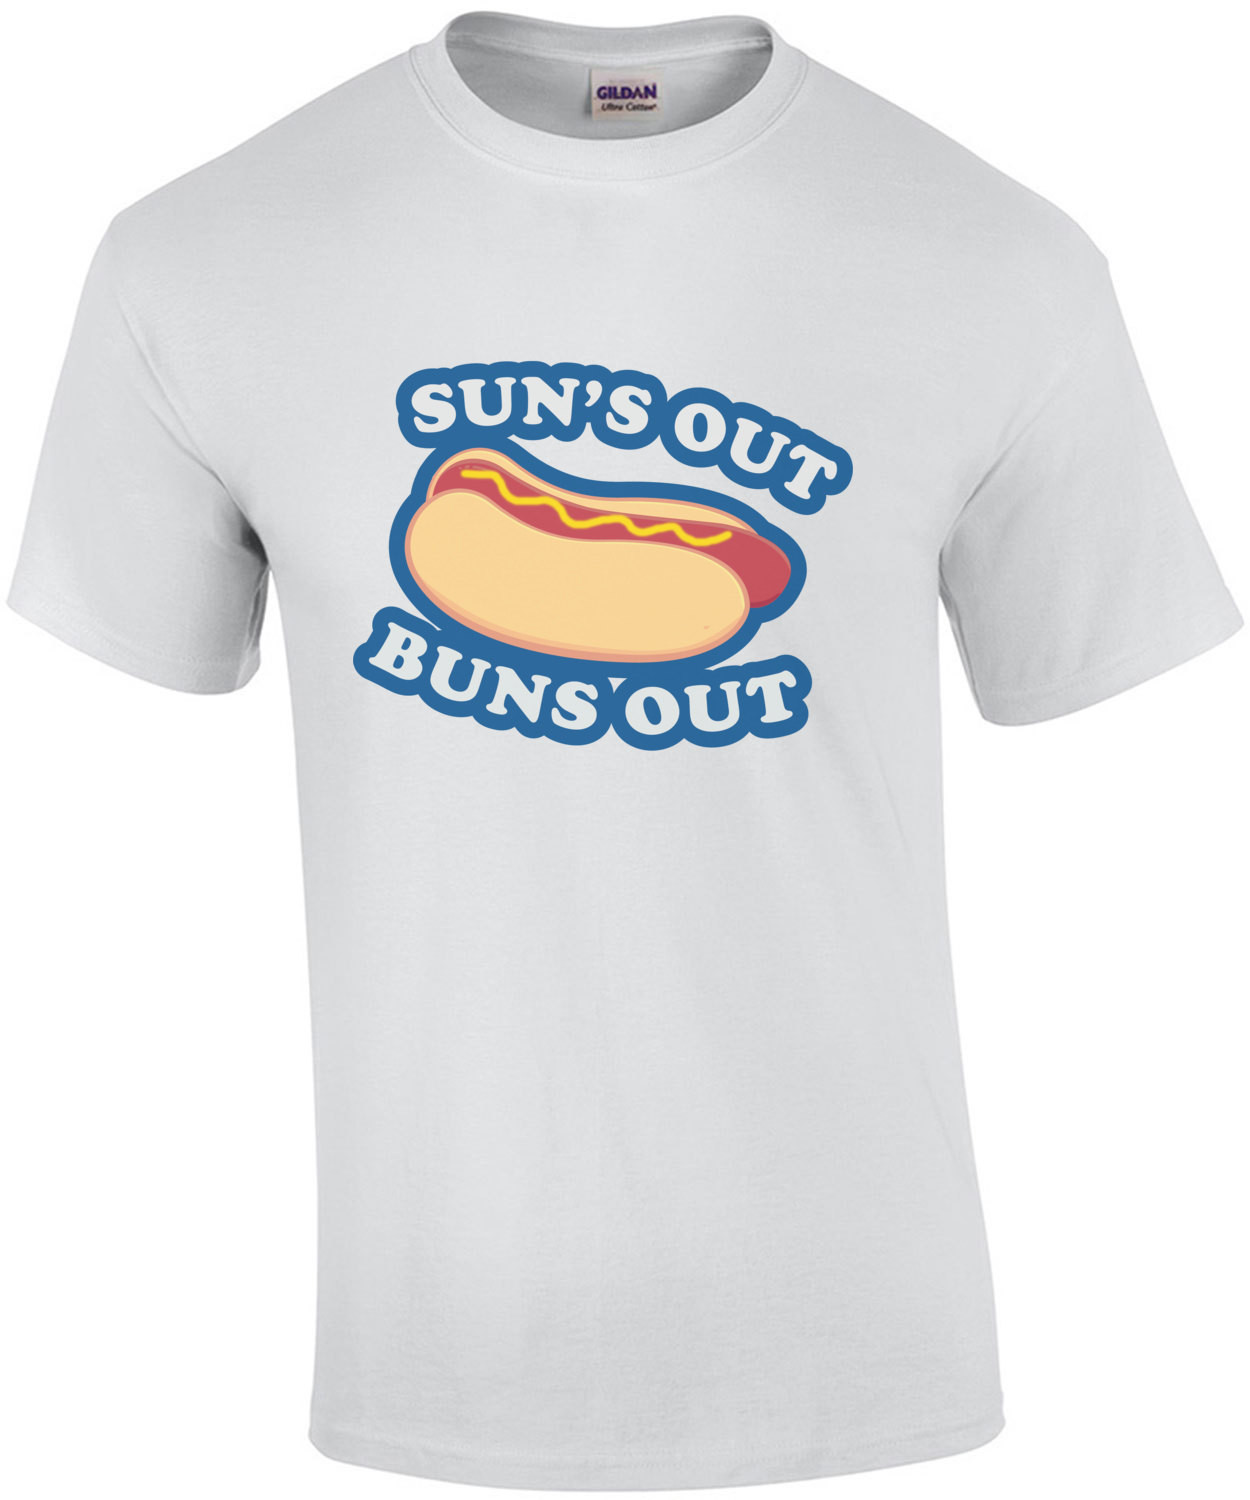 Sun's Out Buns Out - Funny T-Shirt